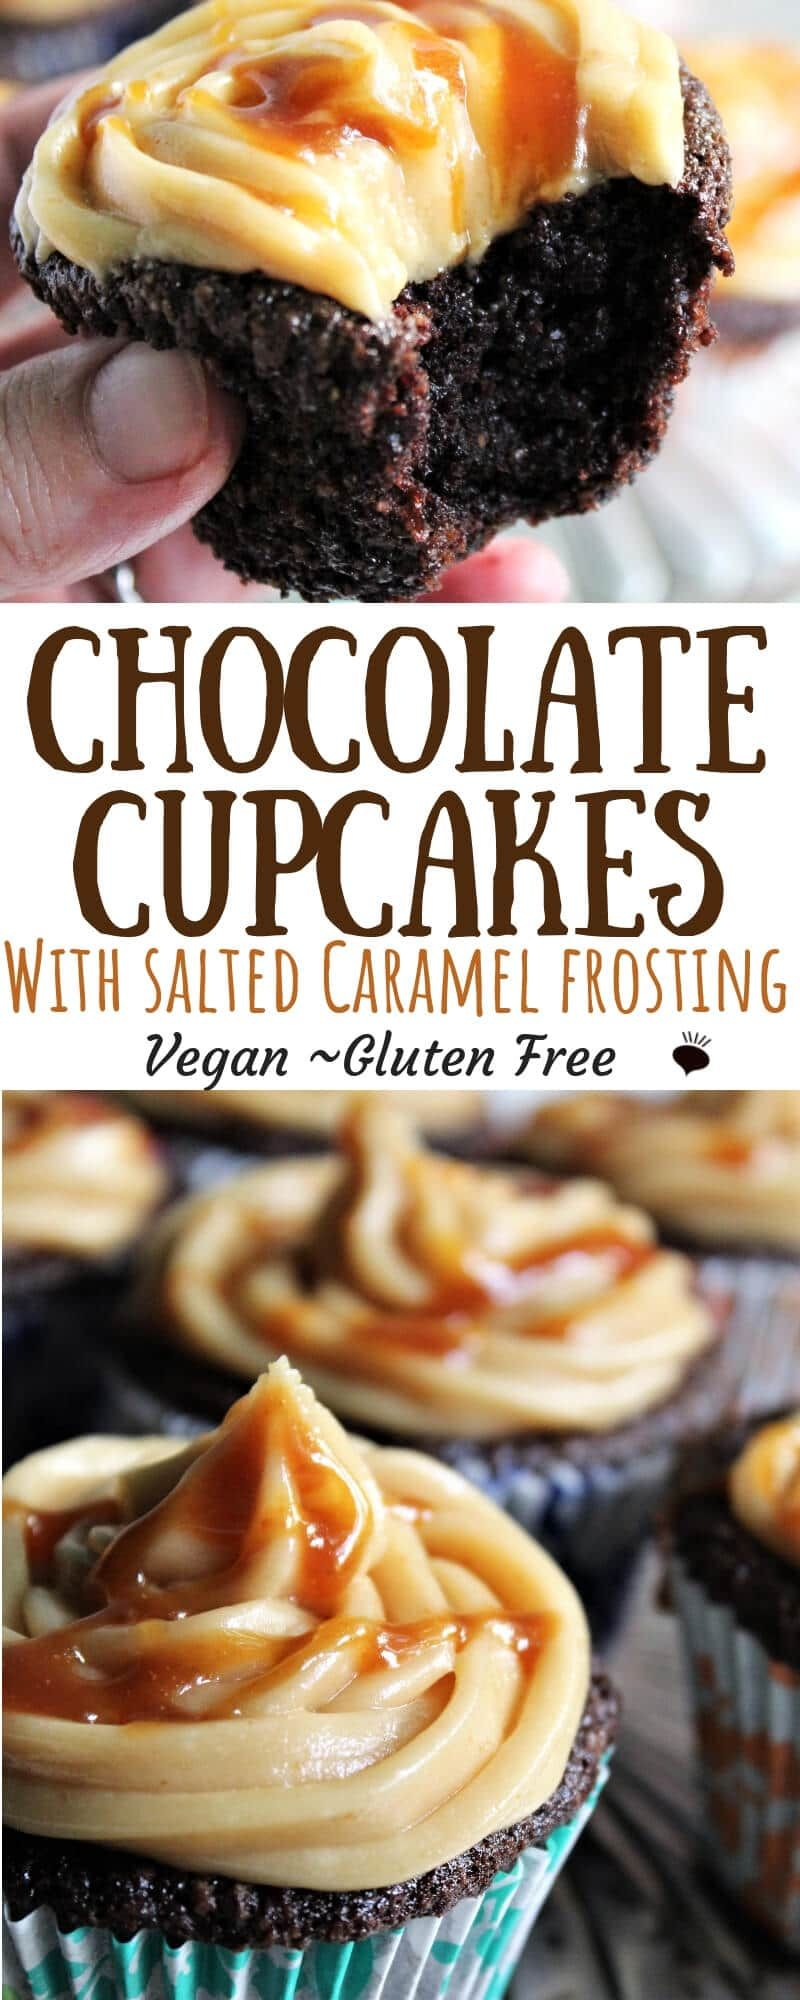 Gluten free vegan chocolate cupcakes that are easy to make with a few simple ingredients and come out moist and delicious every time! All you need is a bowl and a whisk an some basic ingredients and you can make these perfect chocolate cupcakes! #veganchocolatecake #vegancupcakes #glutenfreeveganchocolatecake #easyvegancupcakes #thehiddenveggies #glutenfree